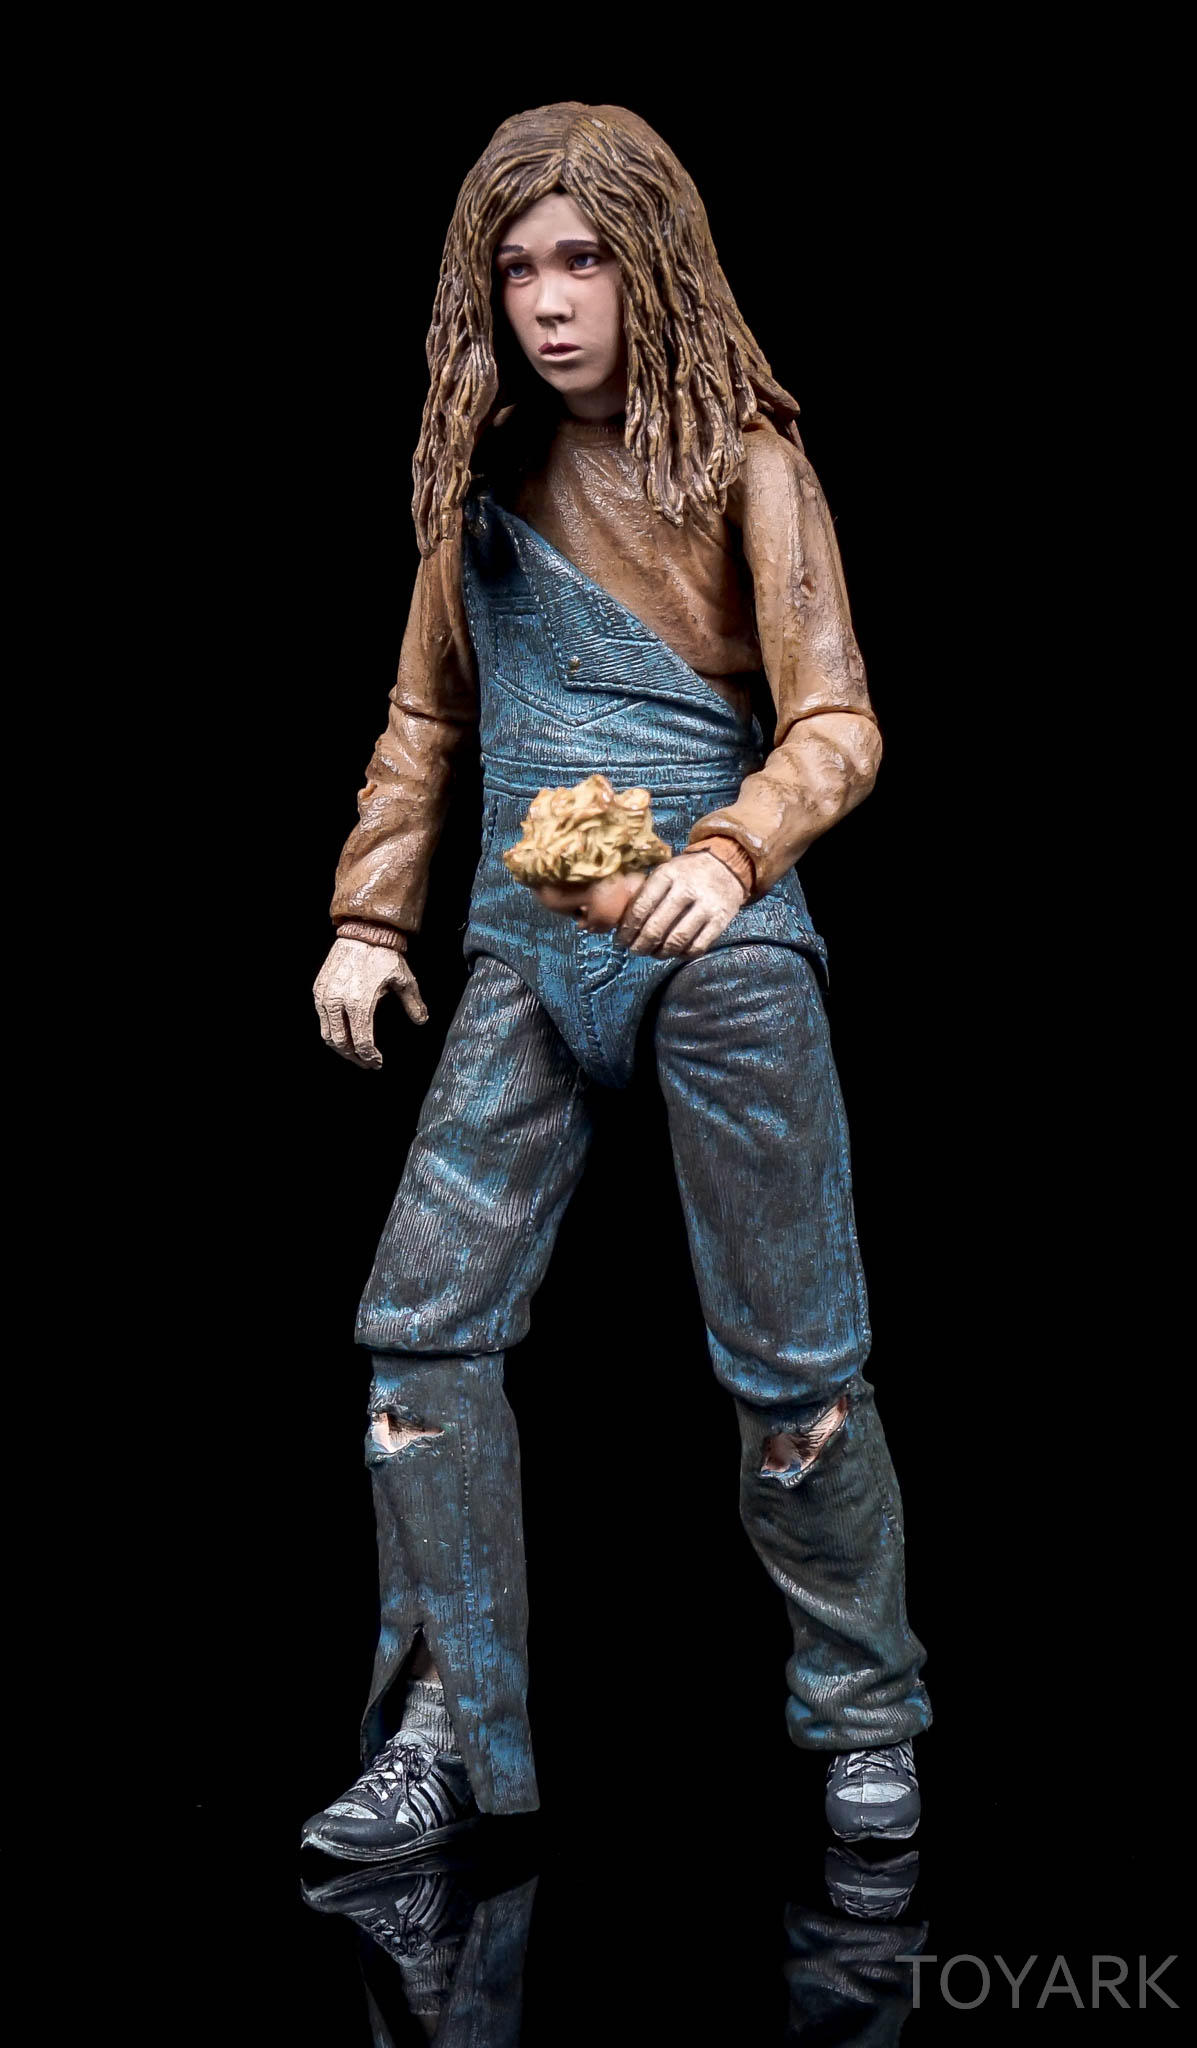 http://news.toyark.com/wp-content/uploads/sites/4/2016/08/NECA-SDCC2016-Aliens-Newt-026.jpg